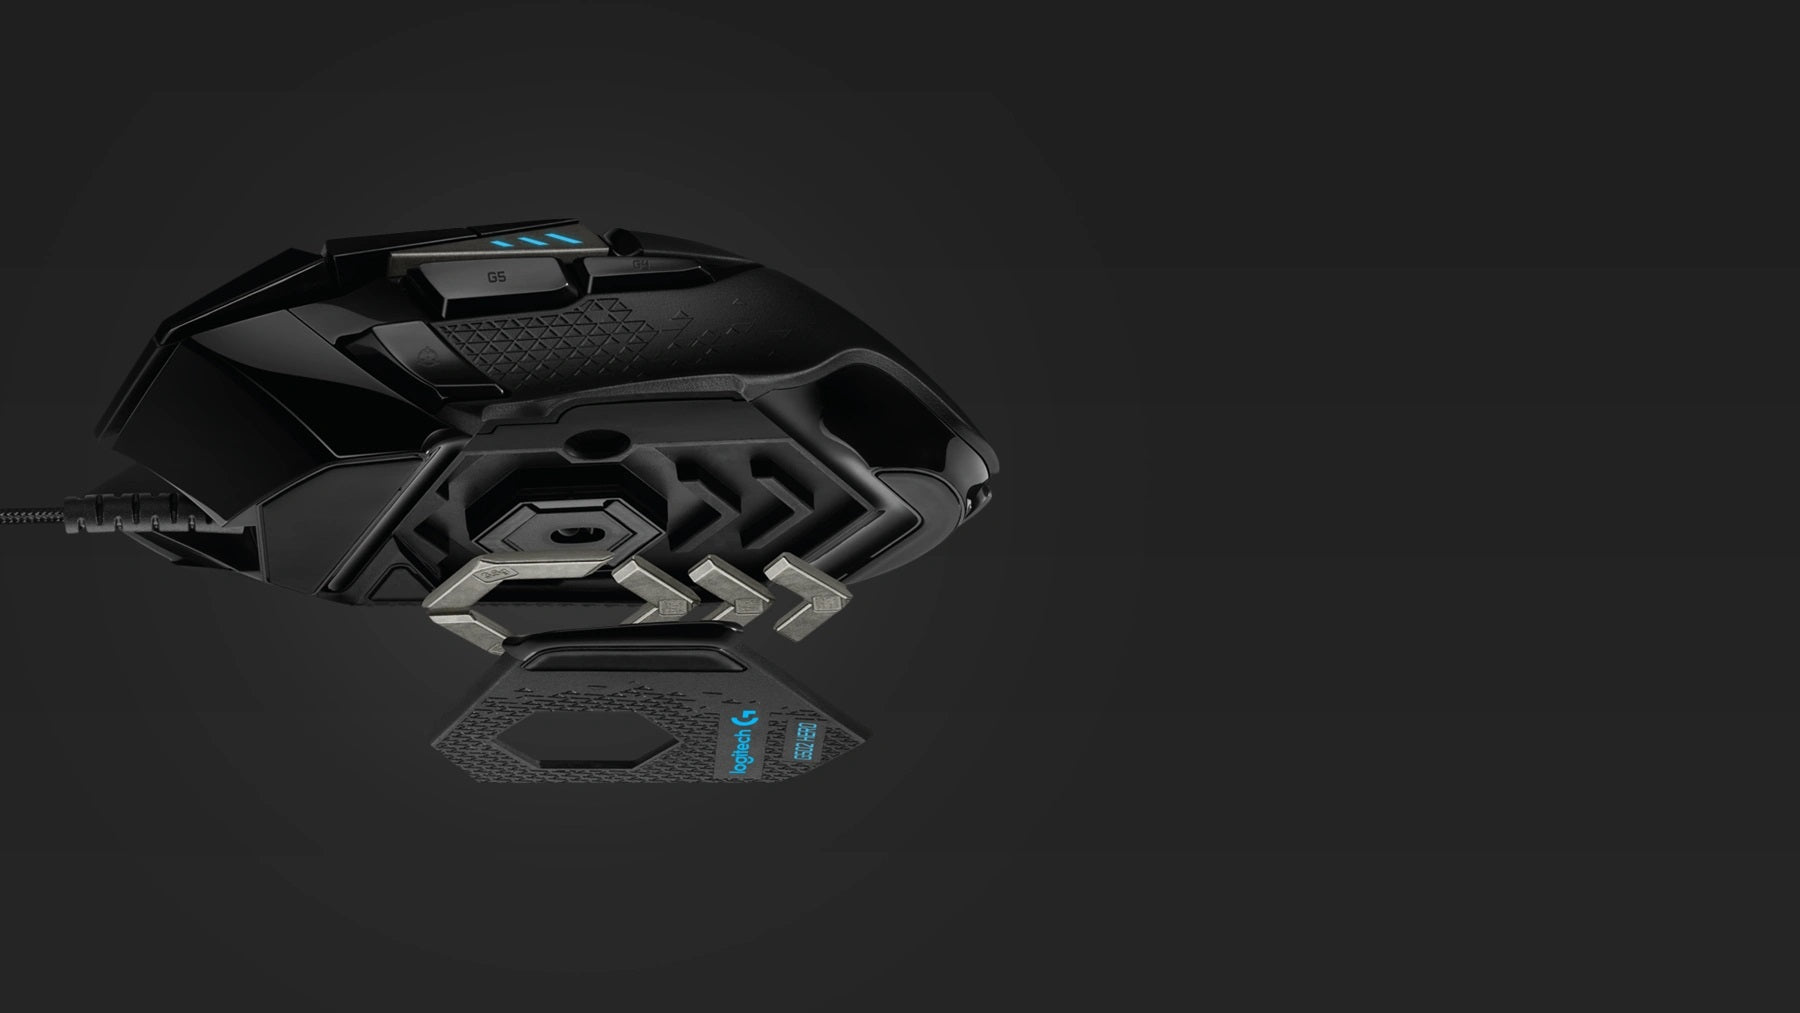 TUNABLE WEIGHT - Fine tune mouse feel and glide to your advantage. Five 3.6g weights come with G502 HERO and are configurable in a variety of front, rear, left, right and center weighted configurations. Experiment with the alignment and balance to find the sweet spot to optimize your gaming performance.